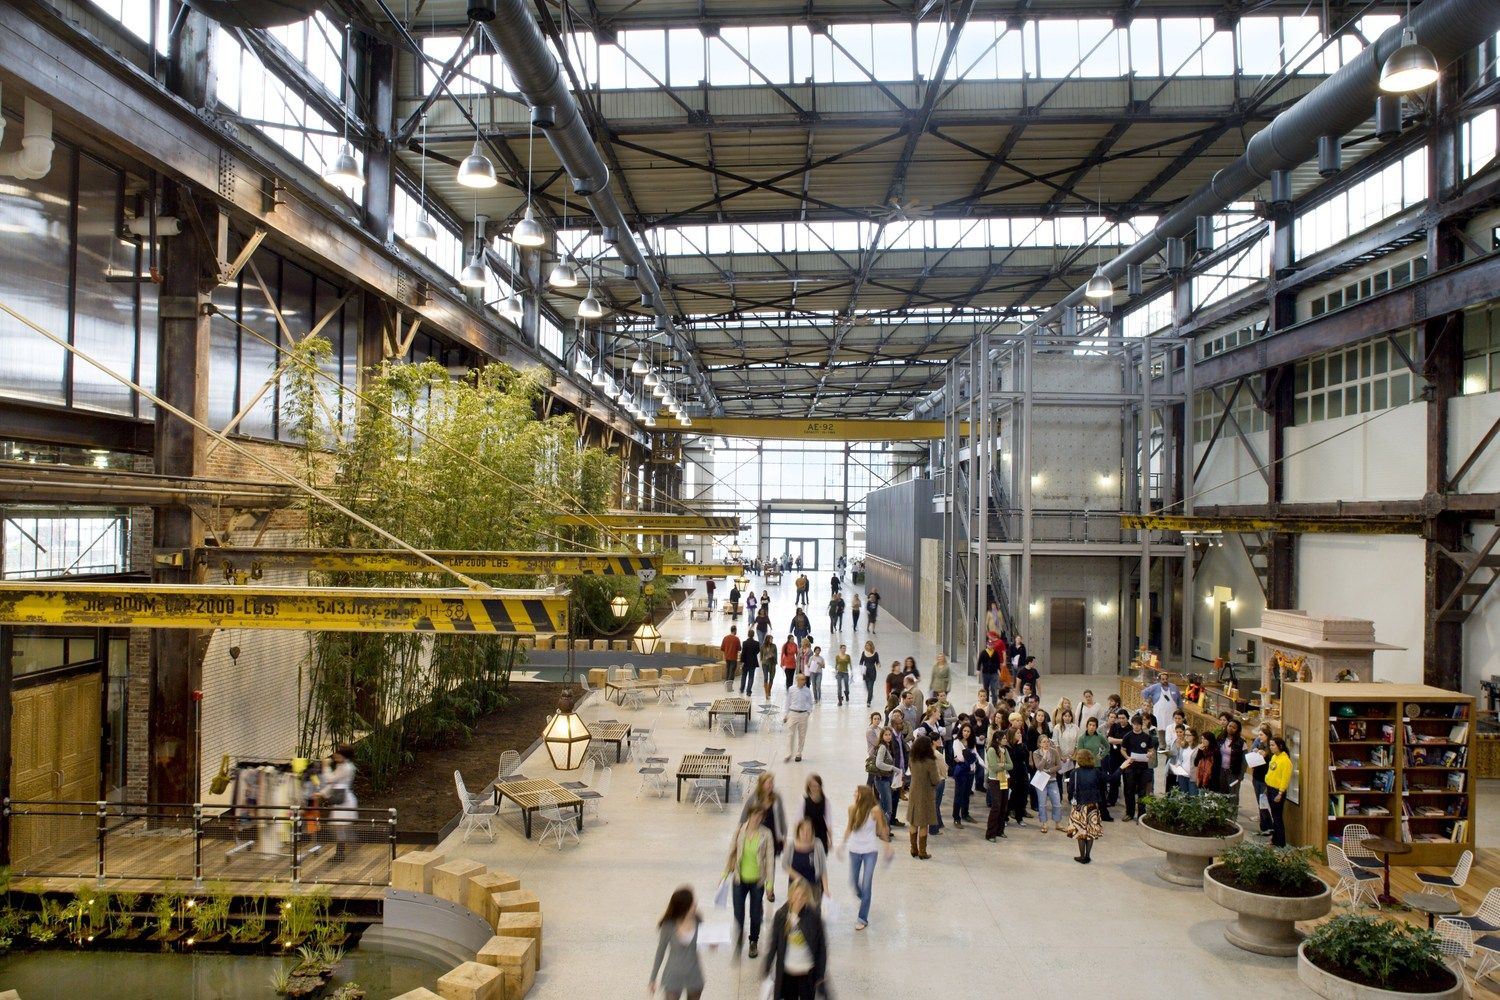 Gallery of Urban Outfitters Corporate Campus / MSR Design